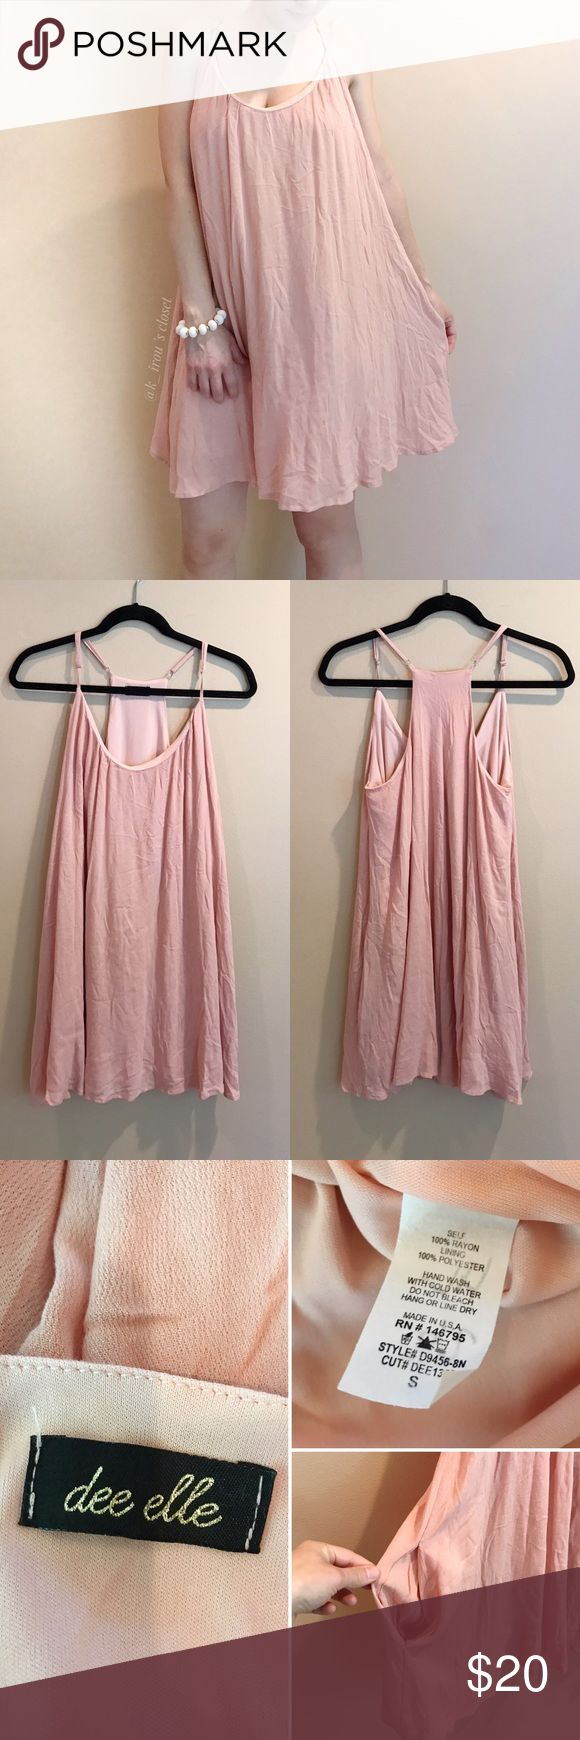 """dee elle pink shift dress Clothing brand from dee elle. Loose fitting shift dress. Adjustable straps and pocket on side. Another layer inside. Model on first photo is 5'2"""" so it the dress may look longer than the model on fourth photo. ❌trade ❌hold ✅bundle and save 10% Nordstrom Dresses Midi"""